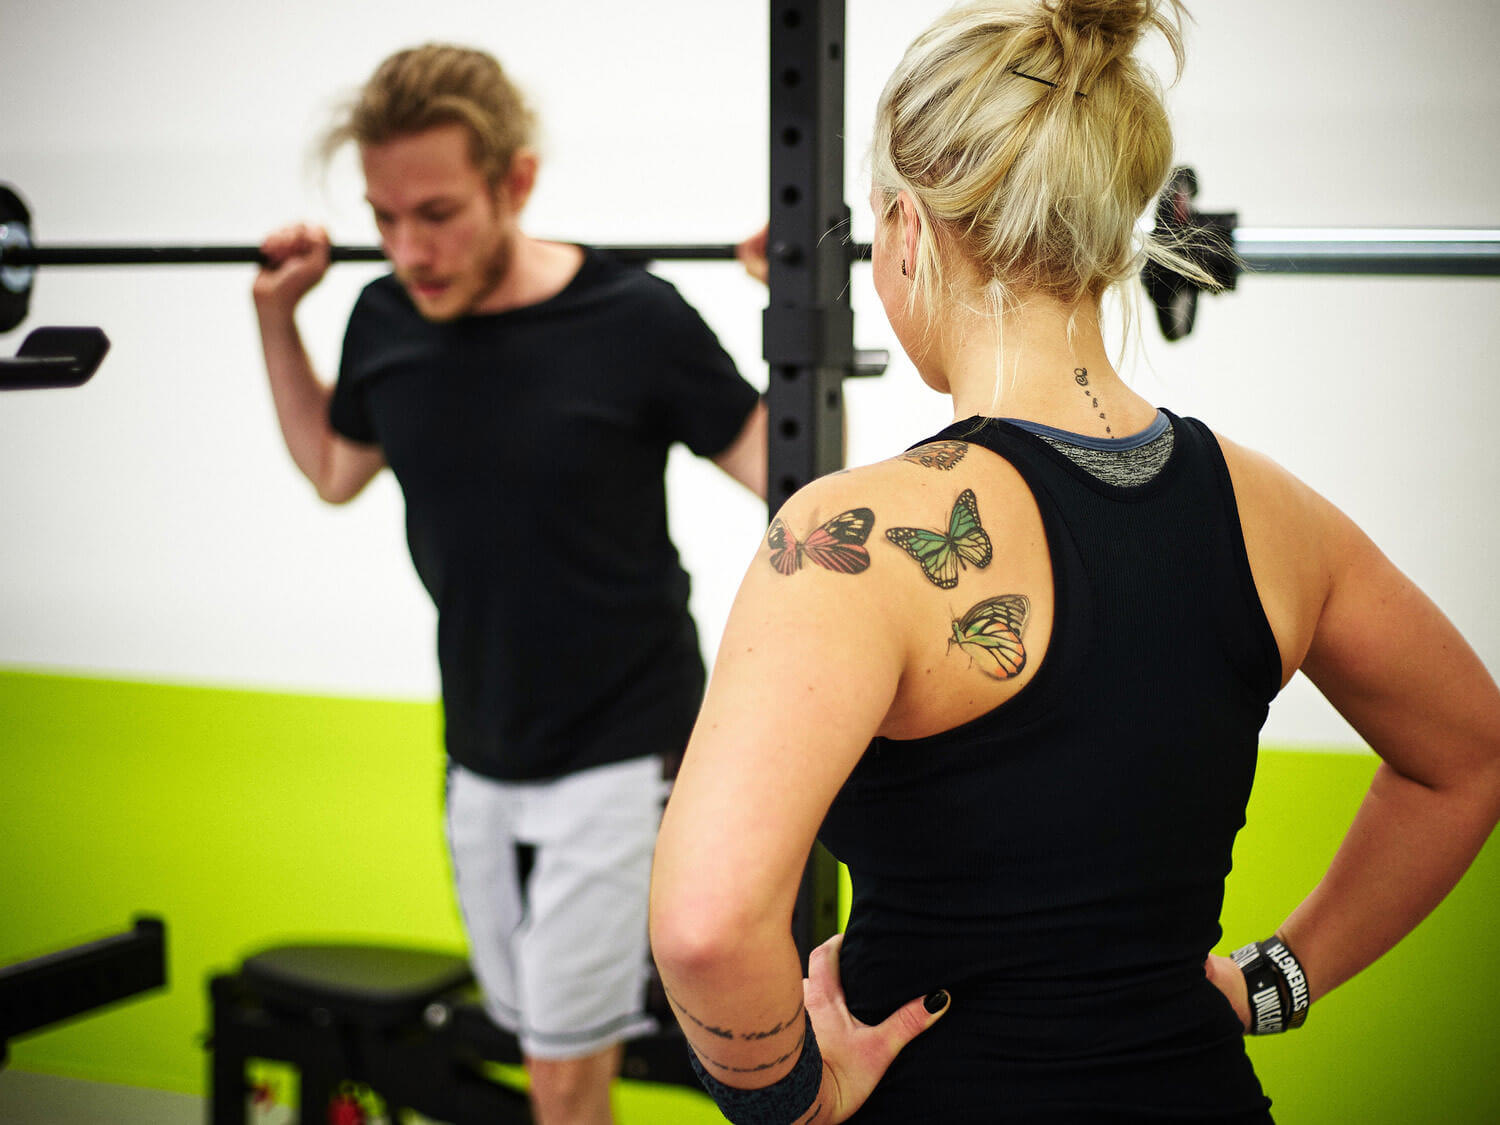 Optimum_Training_Wien_Studio_Crossfit_1080_Krafttraining.jpg